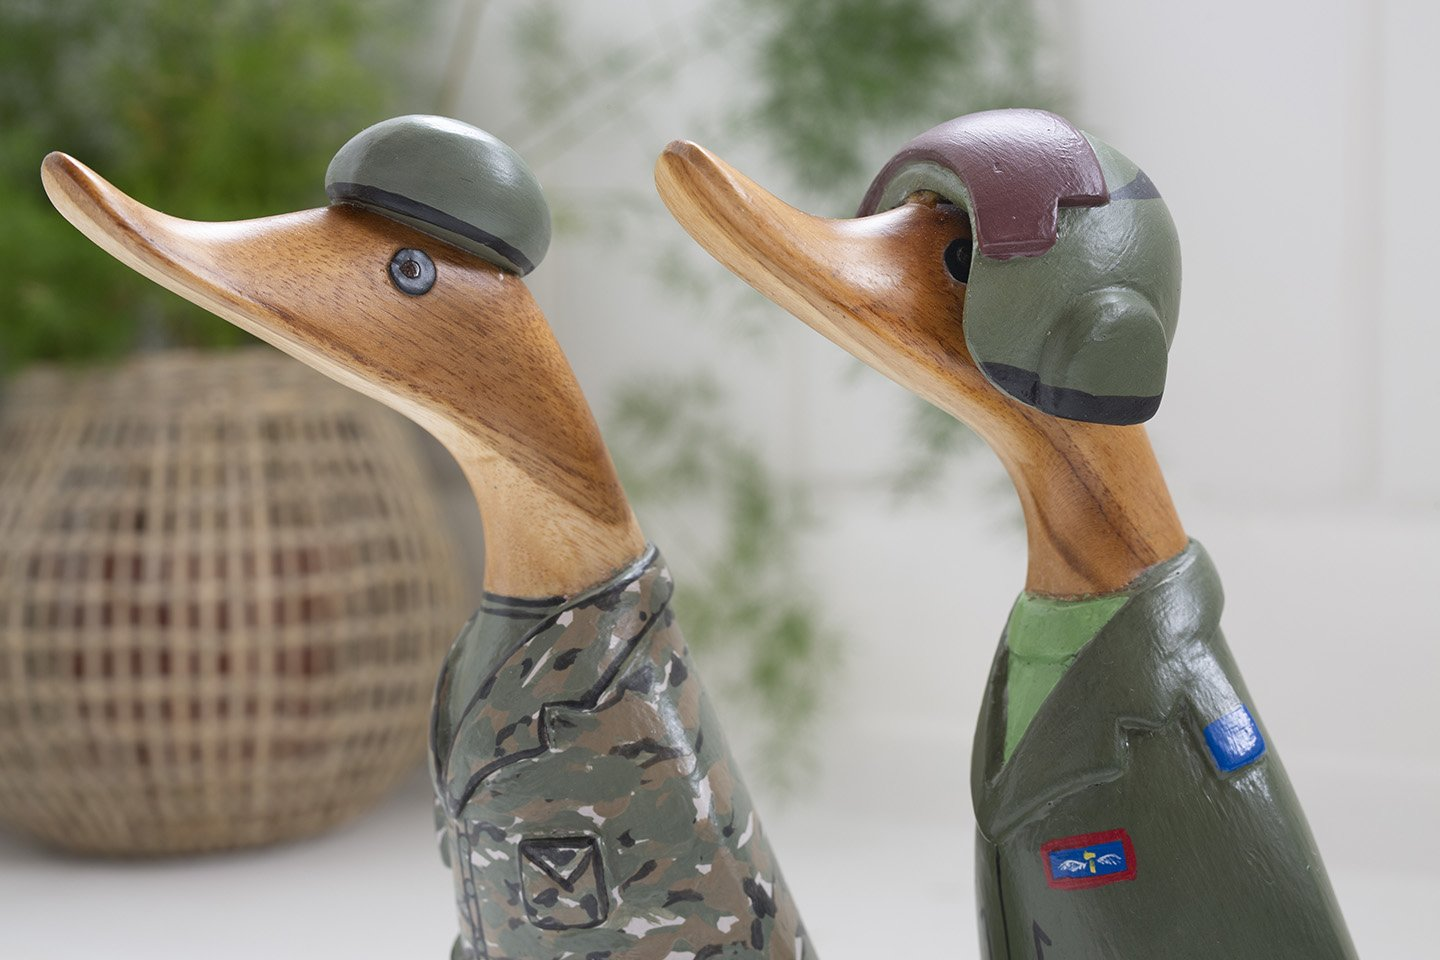 Armed forces ducks - gifts for servicemen and women